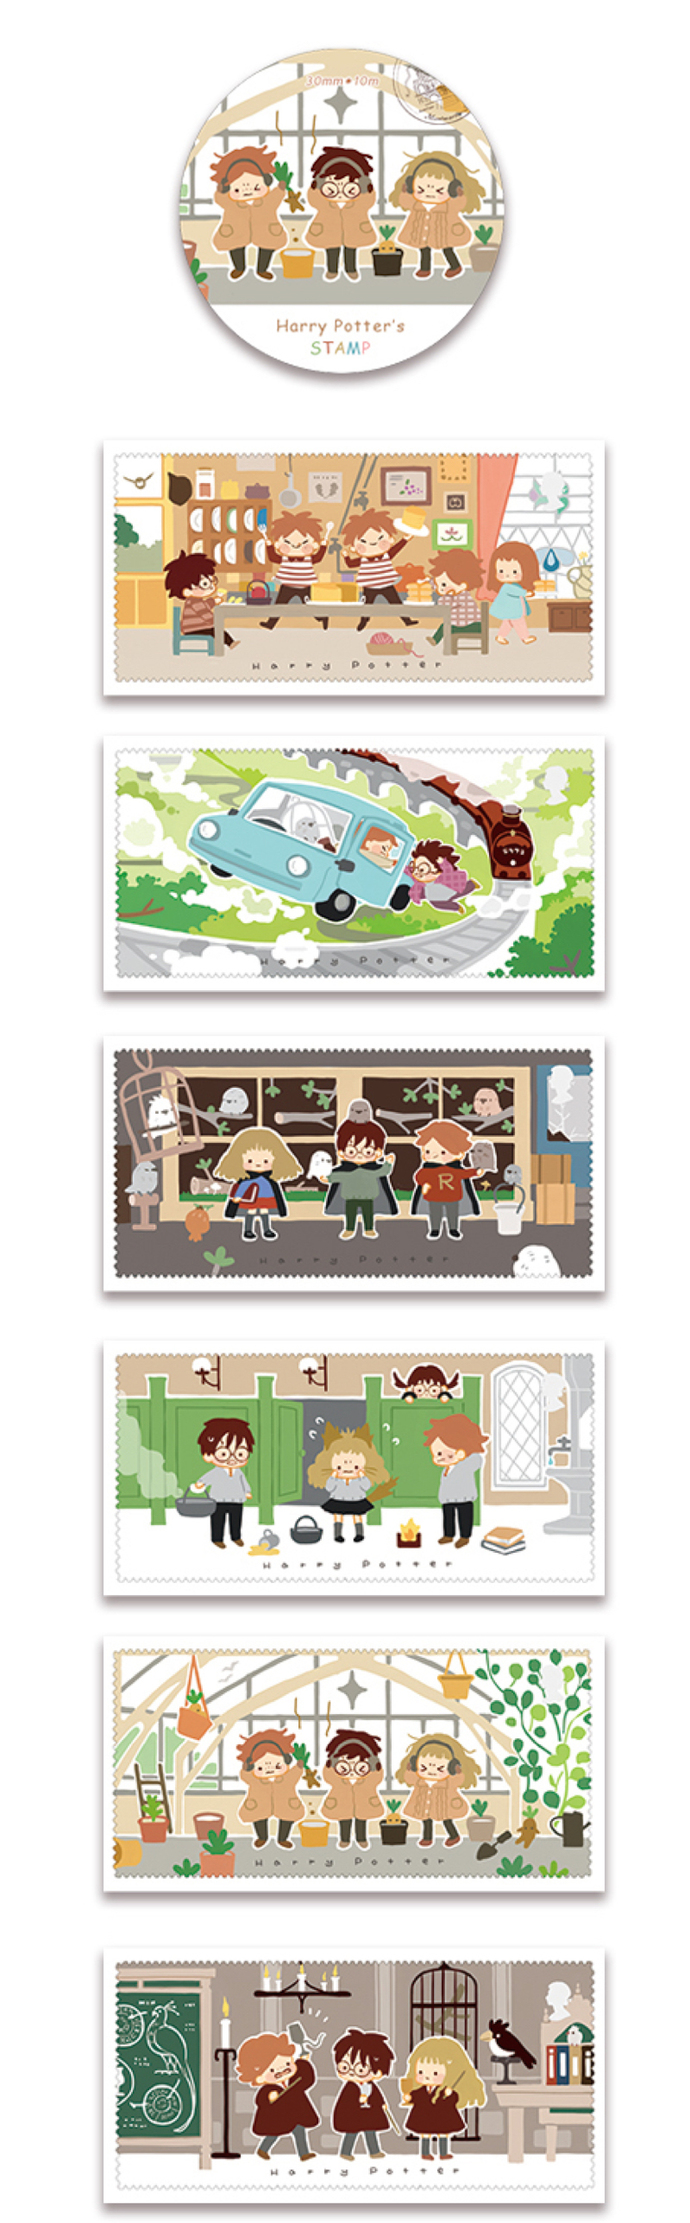 1 Roll of Limited Edition Washi Tape: Harry Potter's and Friends' Stamp